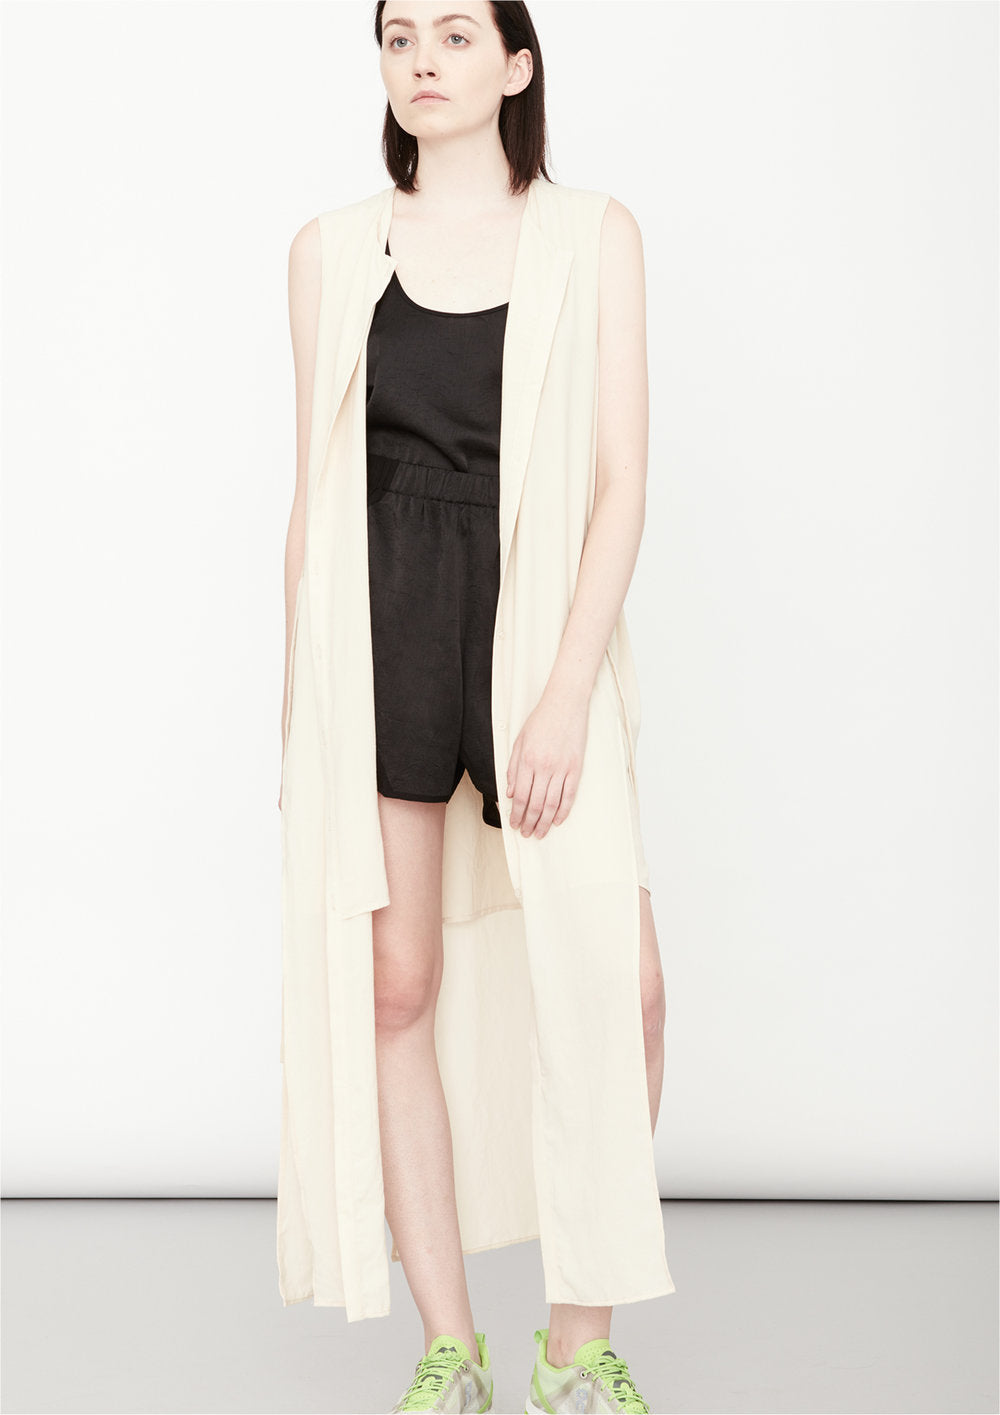 DRESS LONG SLEEVELESS - creme